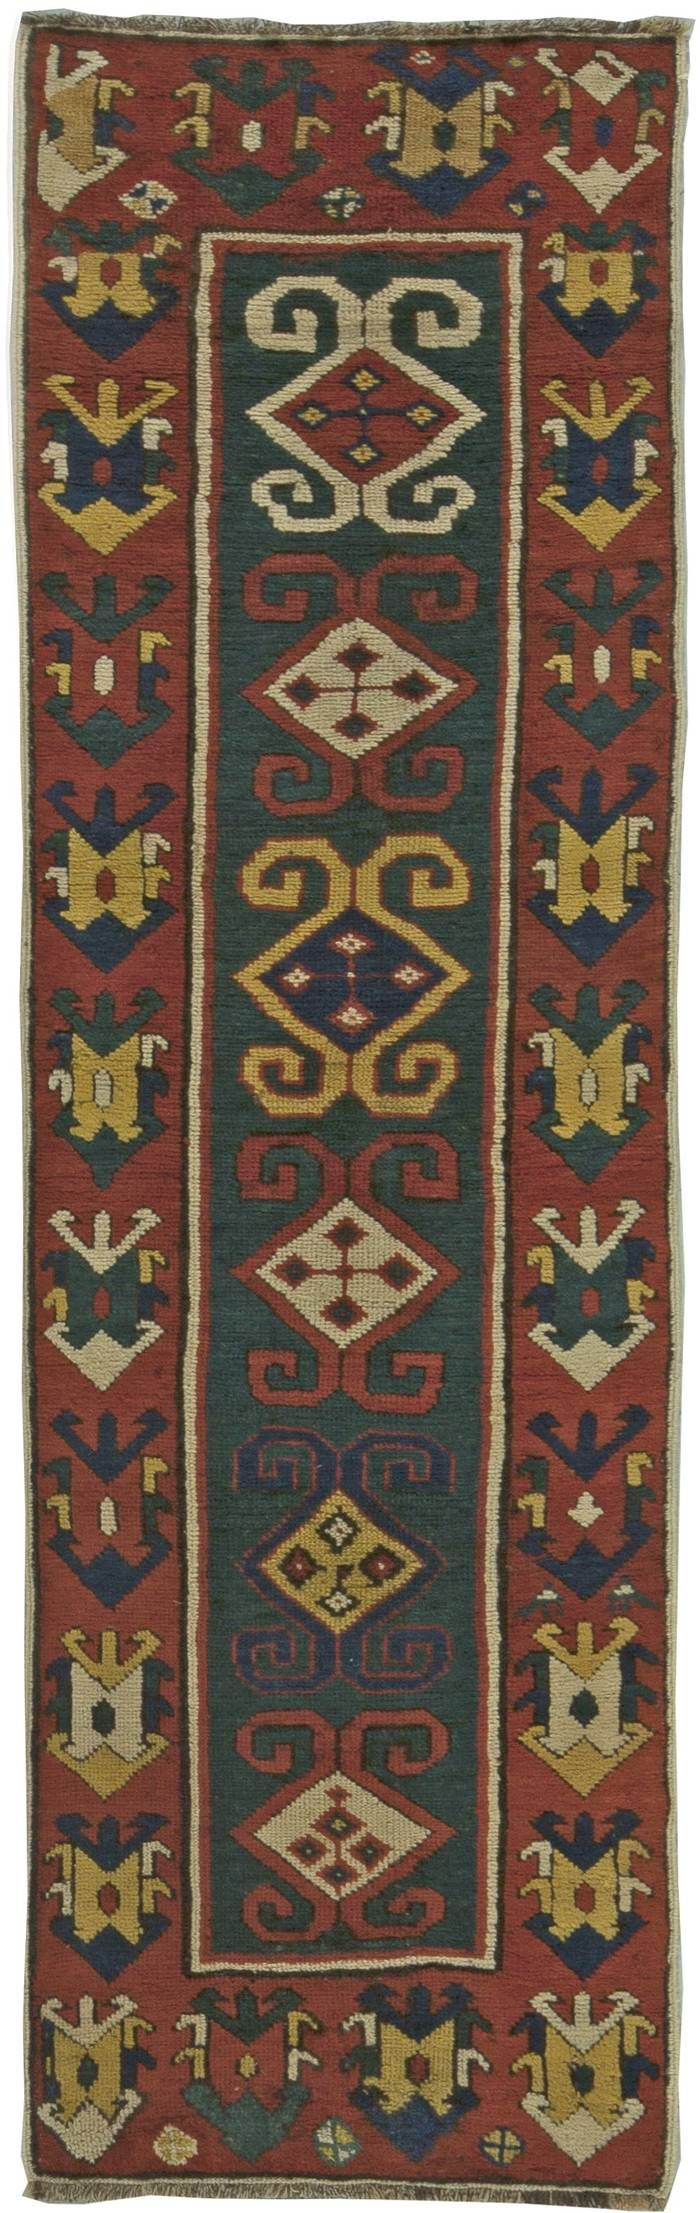 This unique circa-1890 antique Caucasian runner rug features an all-over design of bold geometric abstractions in shades of red, blue and yellow against a field of green. The thick red border framing the central pattern almost dominates it in size and use of similar geometric motifs, highlighting an innovative approach to conventional textile design structure. The Caucasus are a primarily mountainous region in Southern Russia bordered by the Caspian Sea and the Black Sea. Transcaucasia, an…